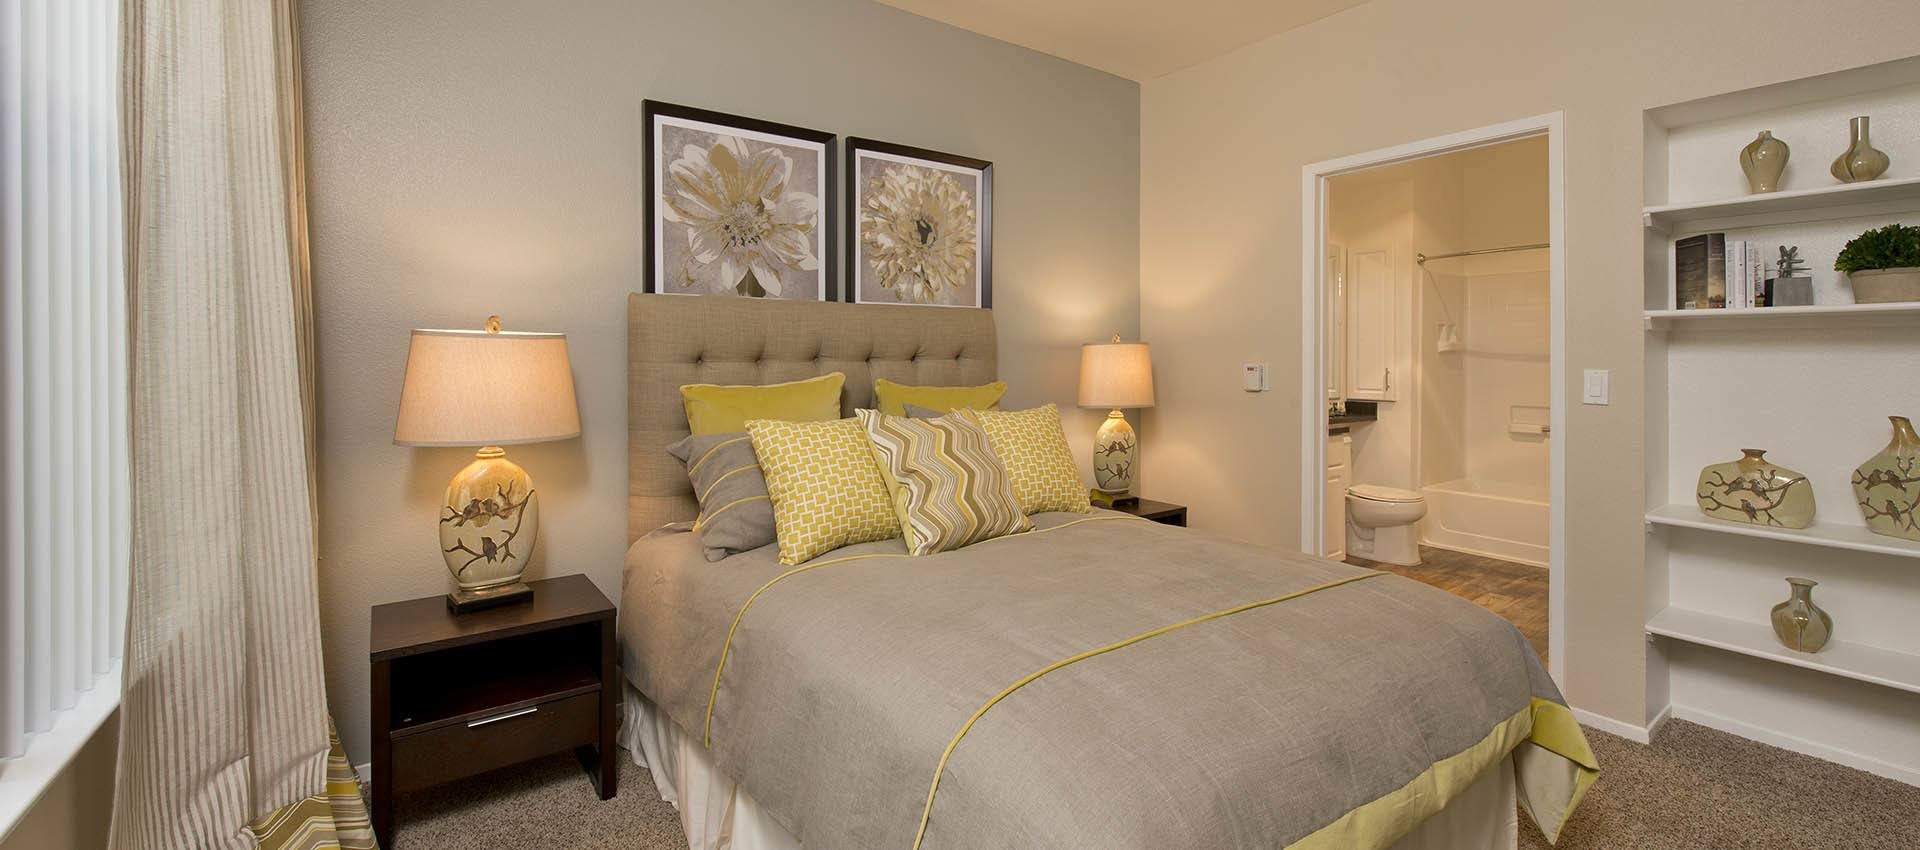 Spacious Bedroom at Rosewalk at San Jose